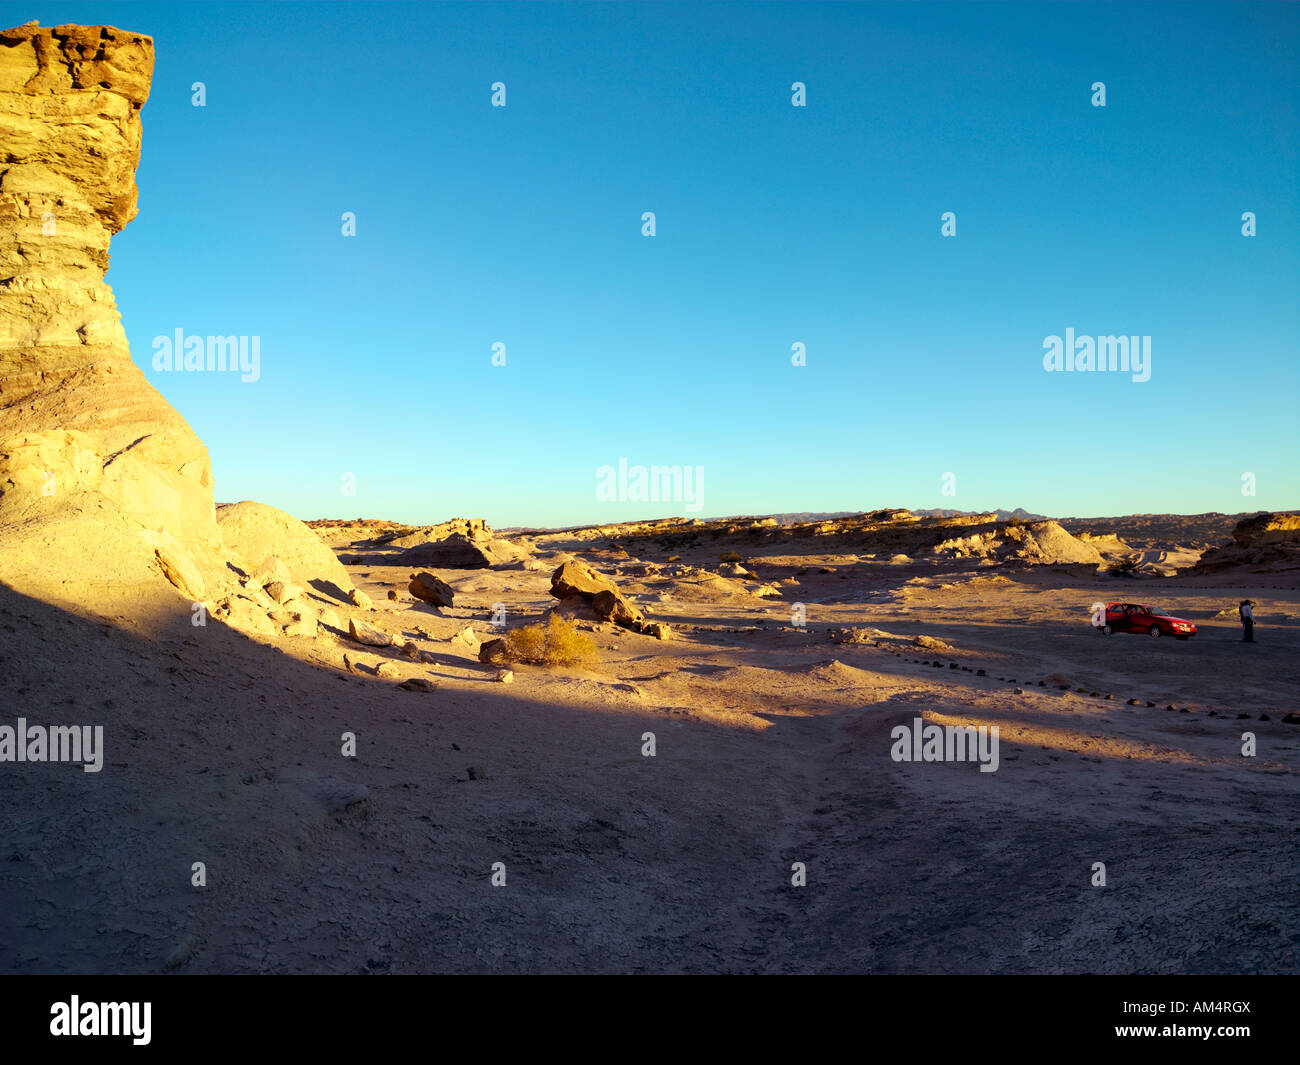 Dusk settling over the rock structure called 'The Mushroom' in Ischigualasto Provincial park, San Juan, - Stock Image